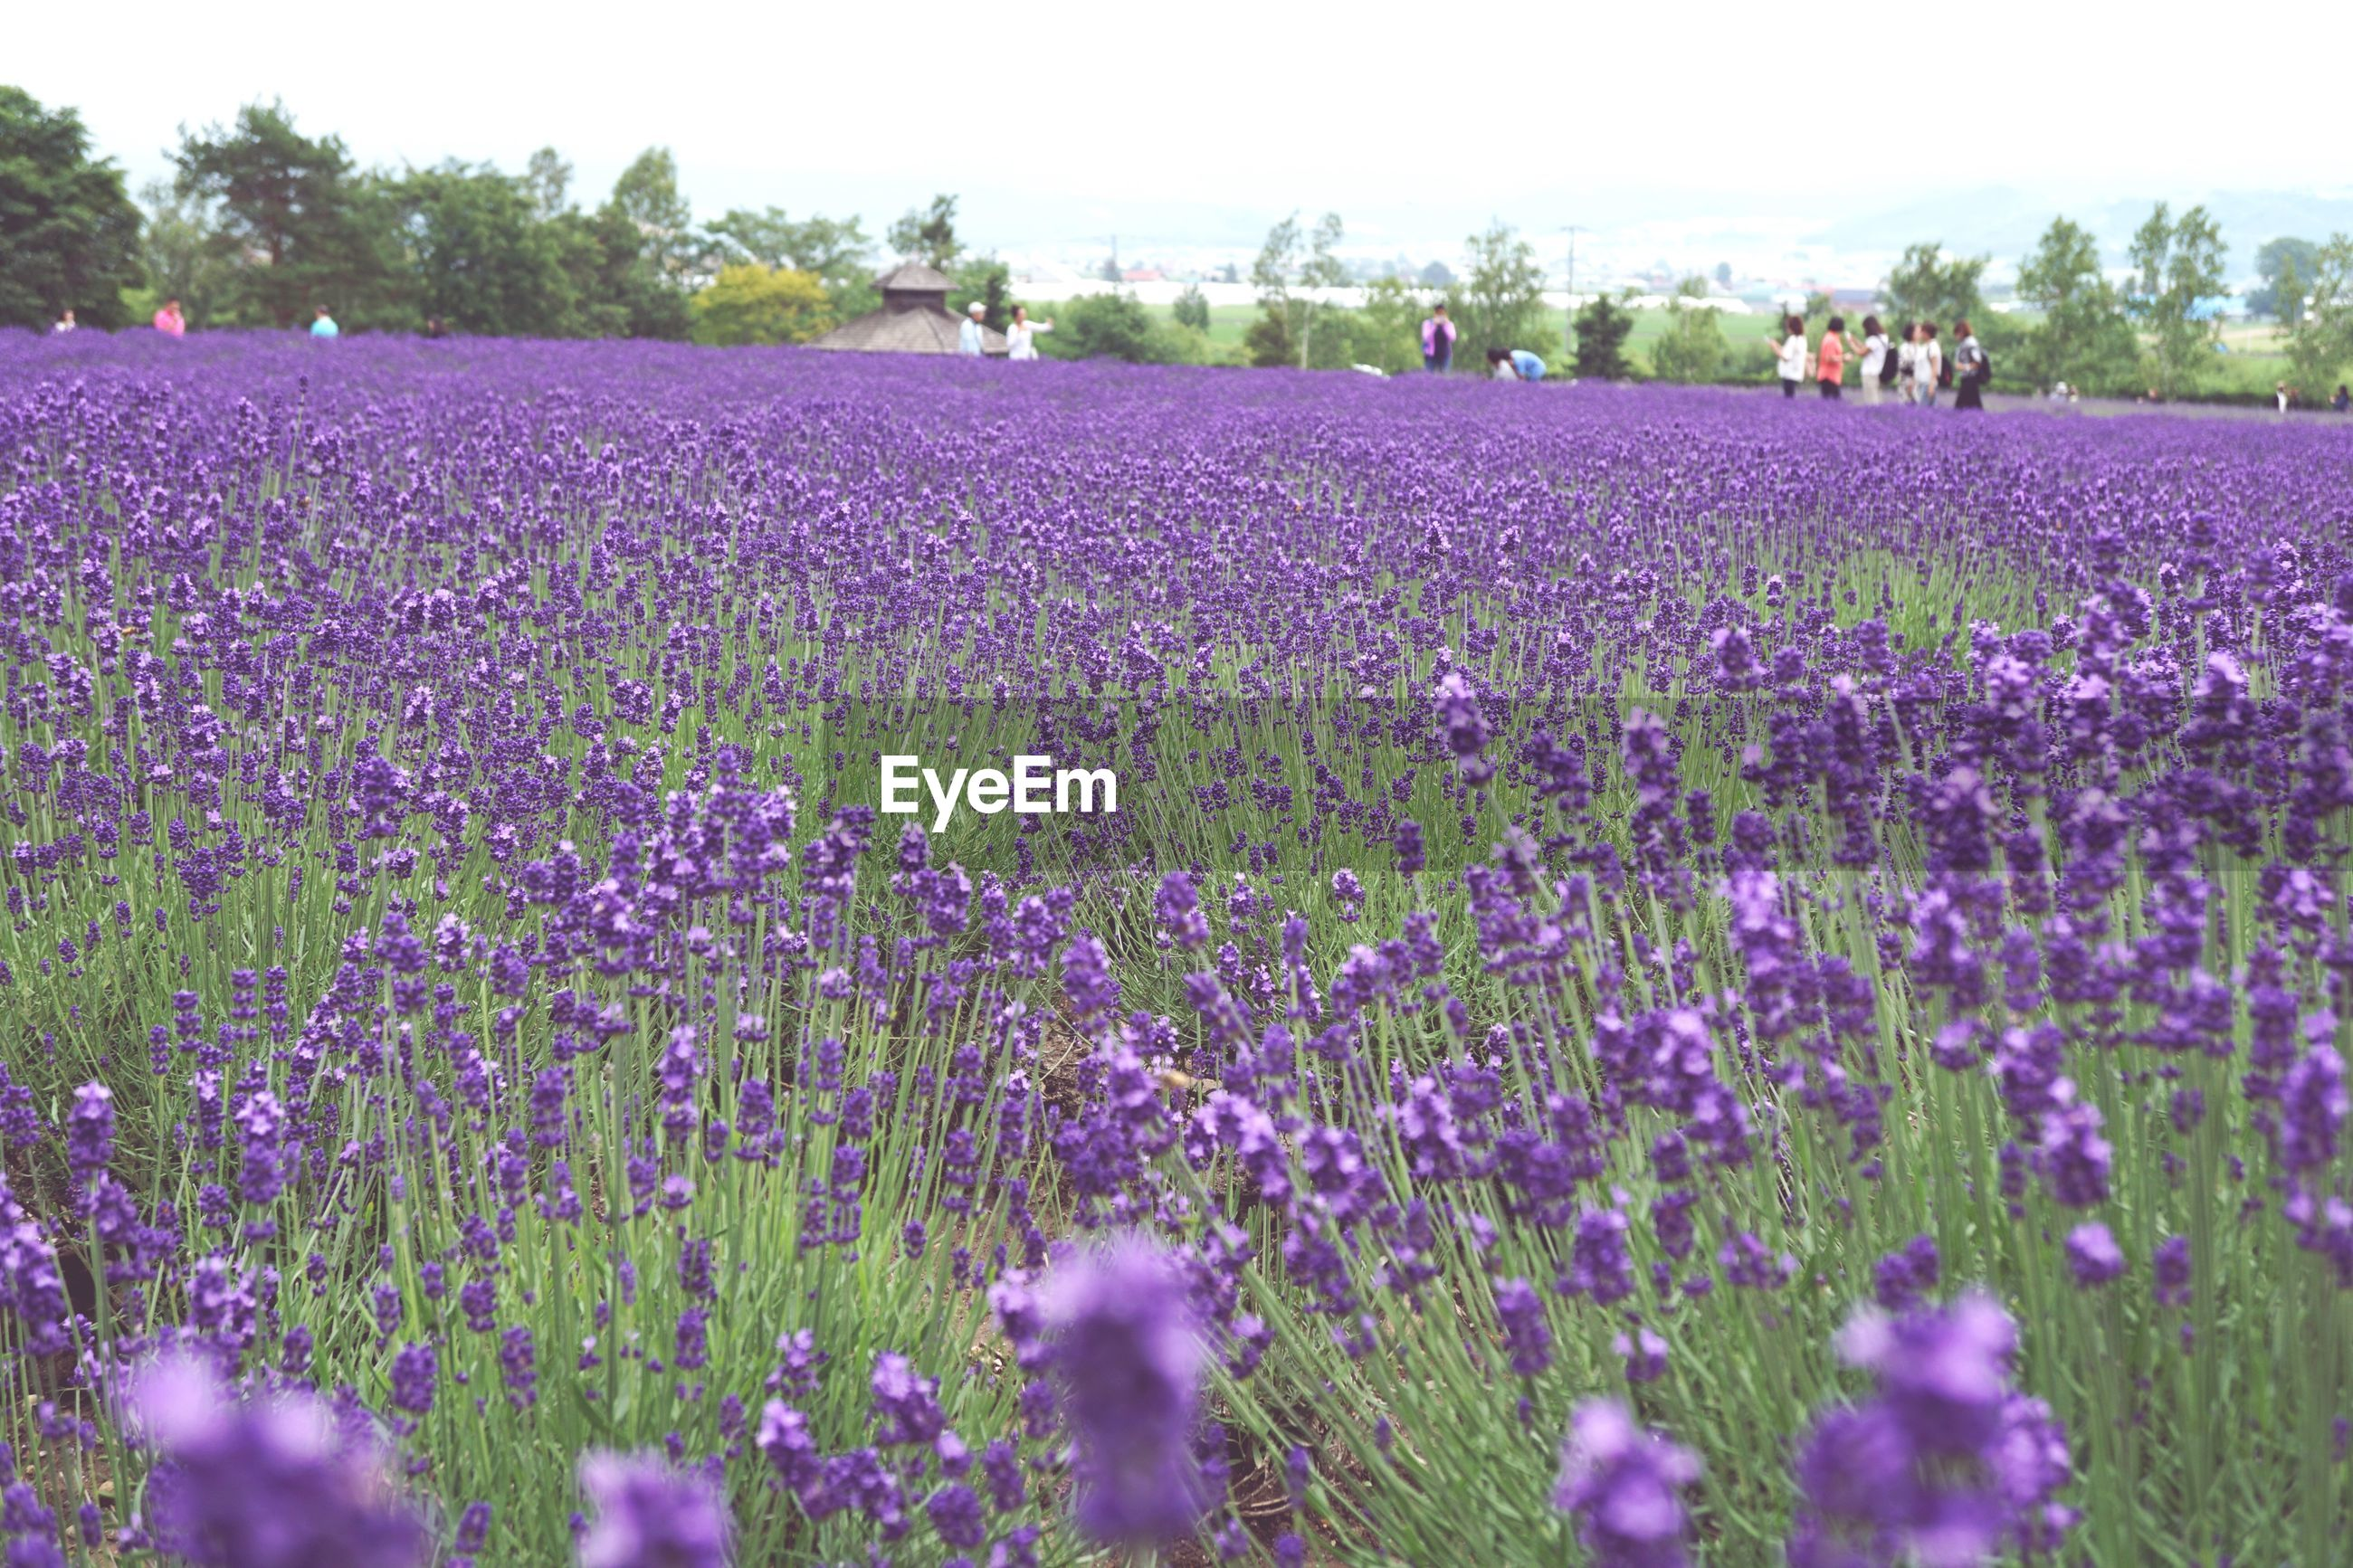 plant, flower, flowering plant, growth, beauty in nature, field, purple, land, landscape, nature, rural scene, freshness, agriculture, vulnerability, lavender, day, scenics - nature, fragility, tranquility, farm, outdoors, flowerbed